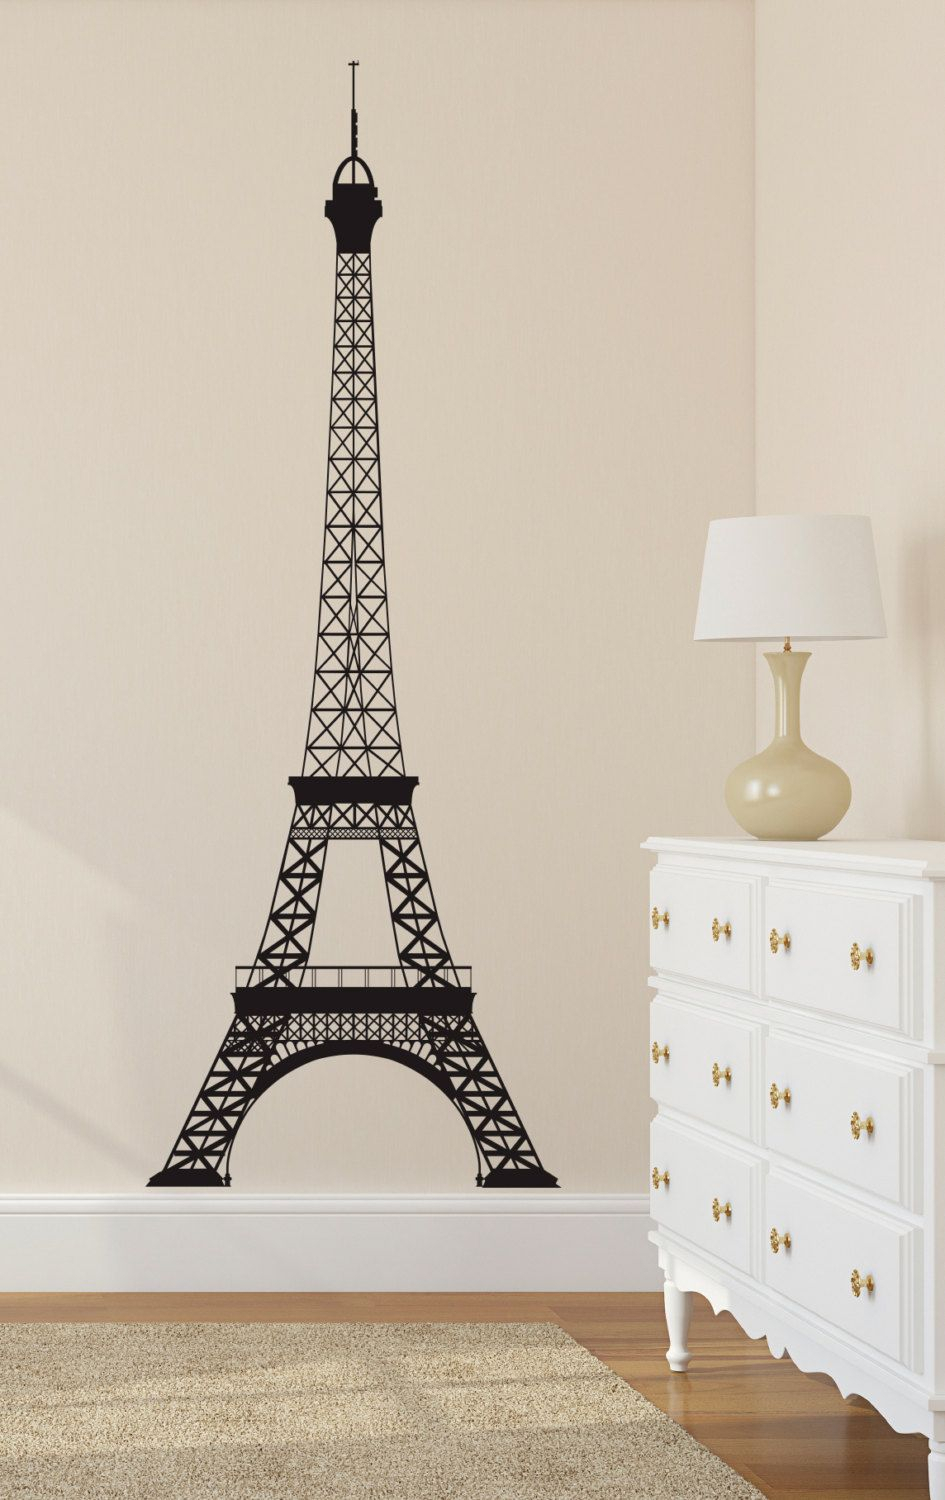 Eiffel Tower Wall Decal Paris Wall Decal Wall Decor La Tour In Latour Wall Decor (Gallery 7 of 30)